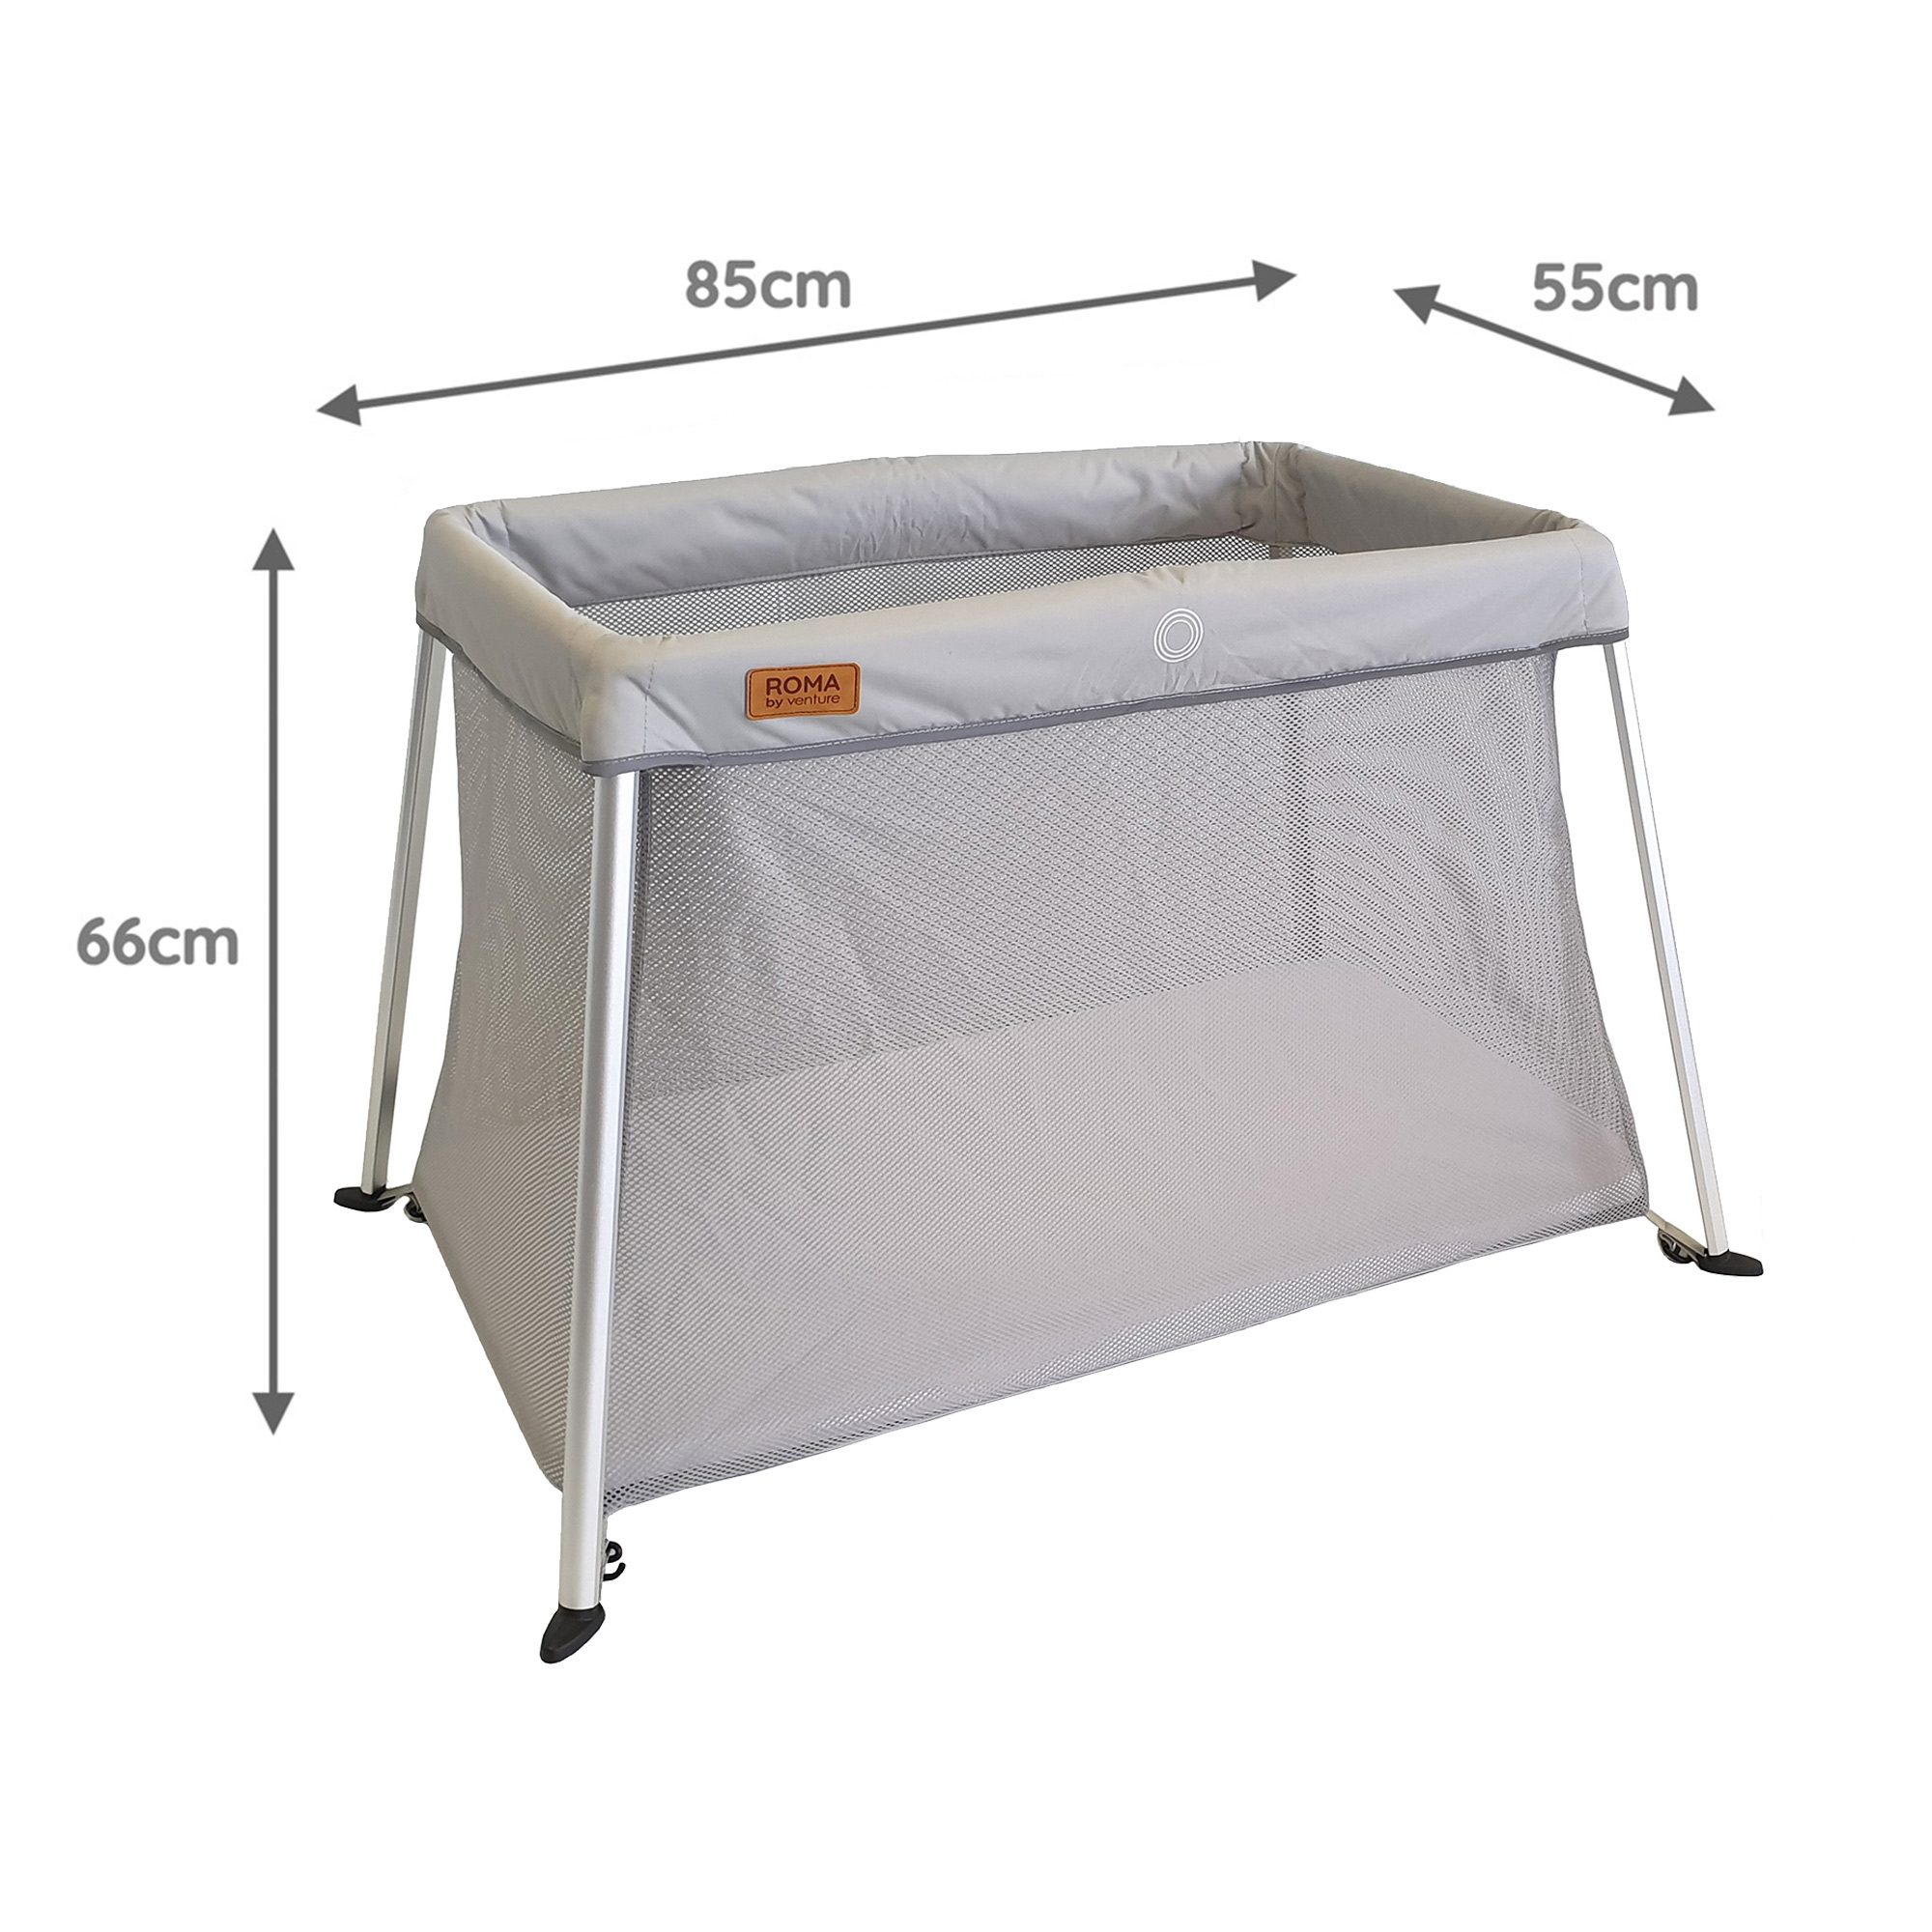 Venture Roma travel cot dimensions